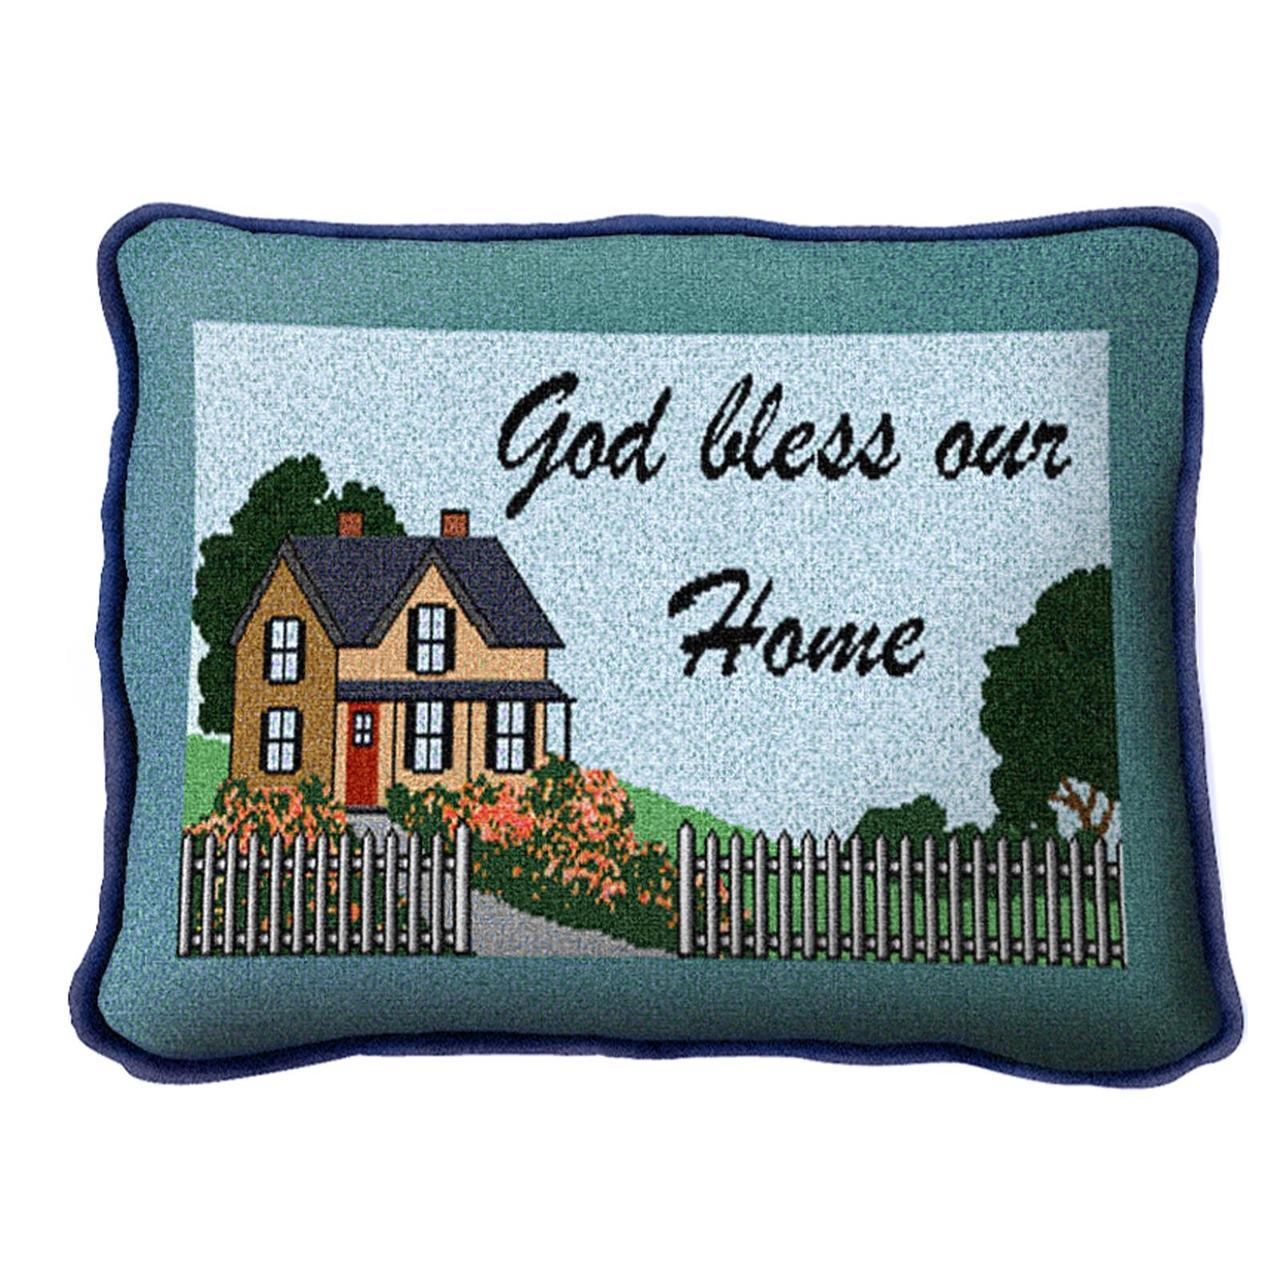 Christian Decor-Throw Pillow-12 x 8-God Bless Our Home